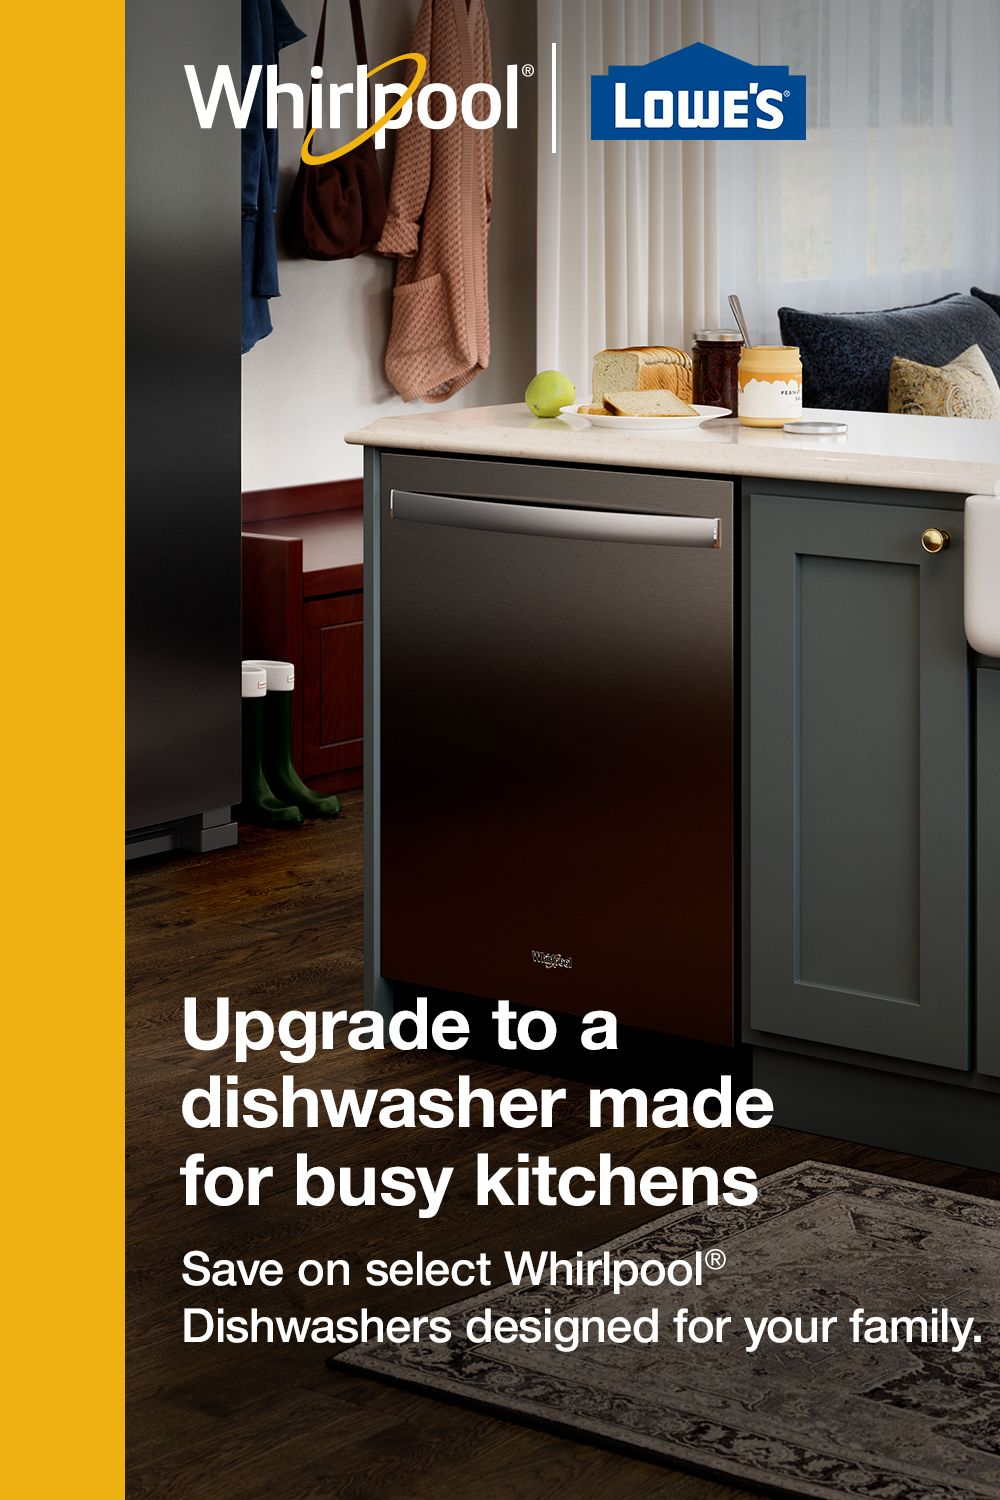 Save On Select Highly Rated Whirlpool Dishwashers Kitchen Renovation Kitchen Remodel Whirlpool Dishwasher